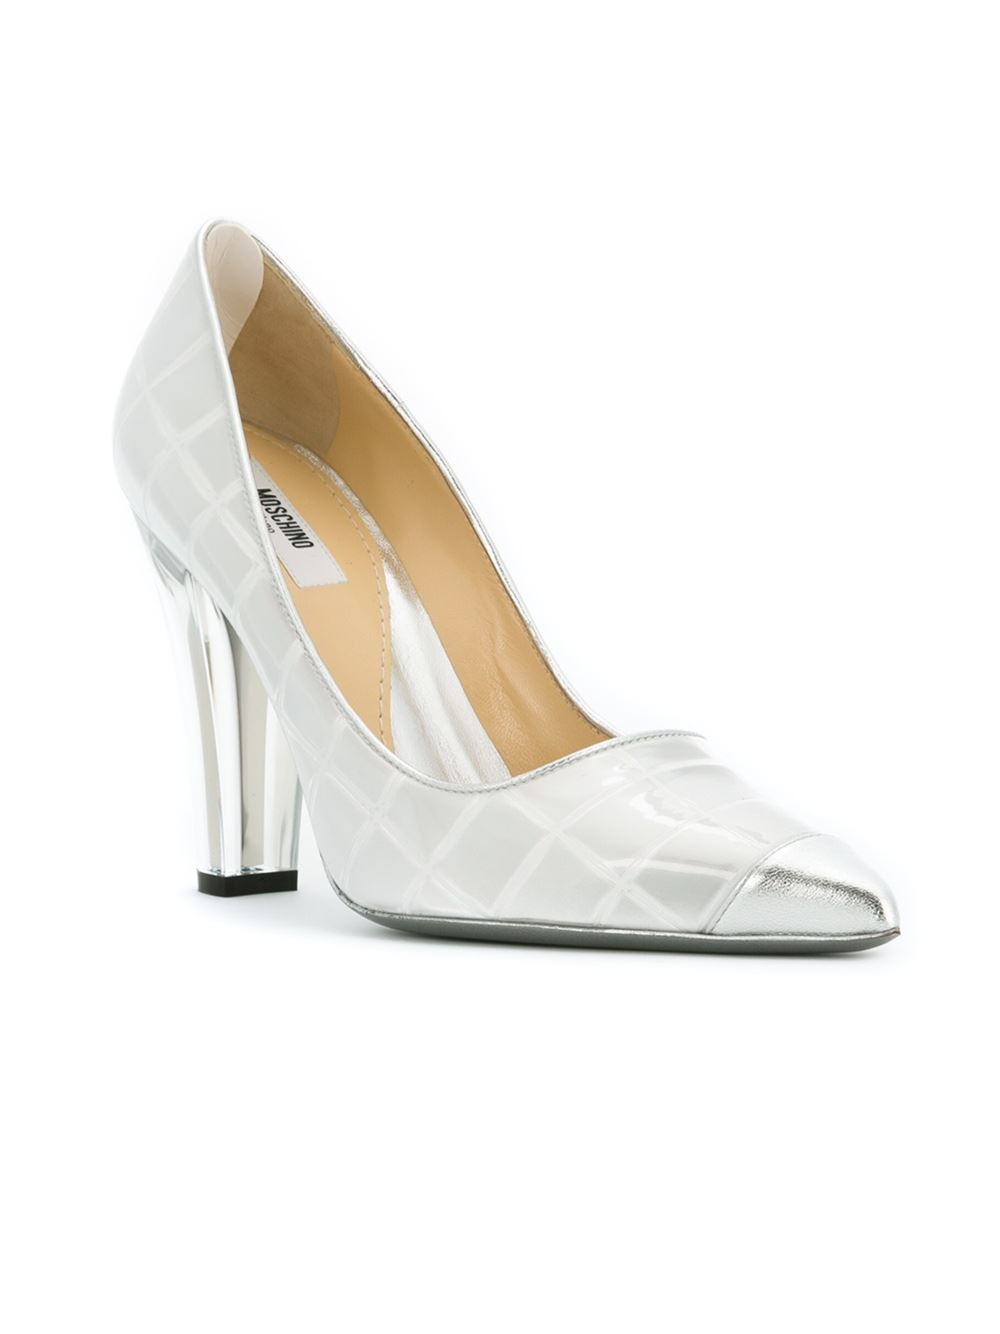 Lyst Moschino Transparent Heel Pumps In White